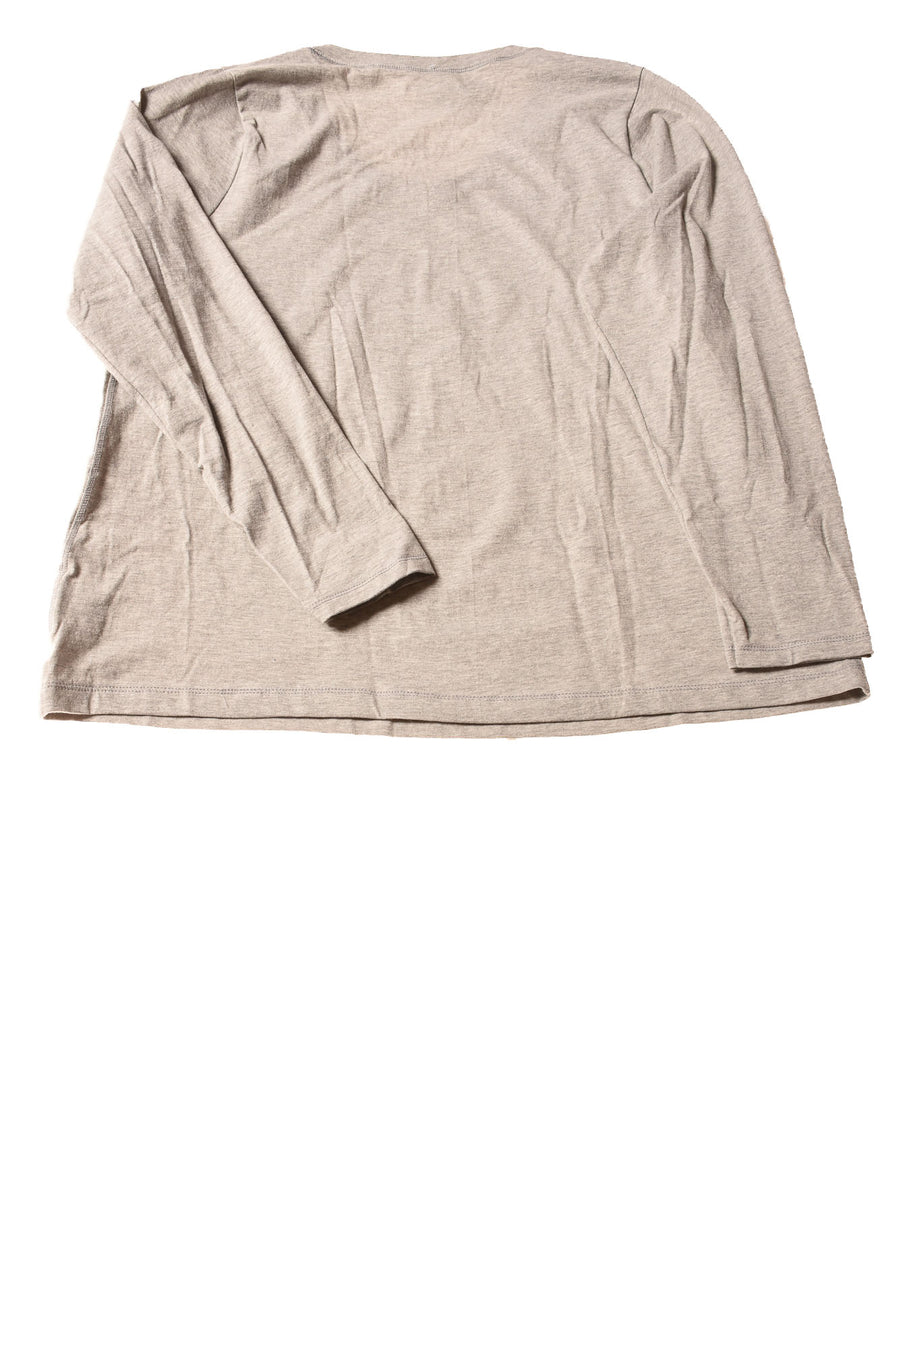 NEW Champion Women's Top X-Large Gray